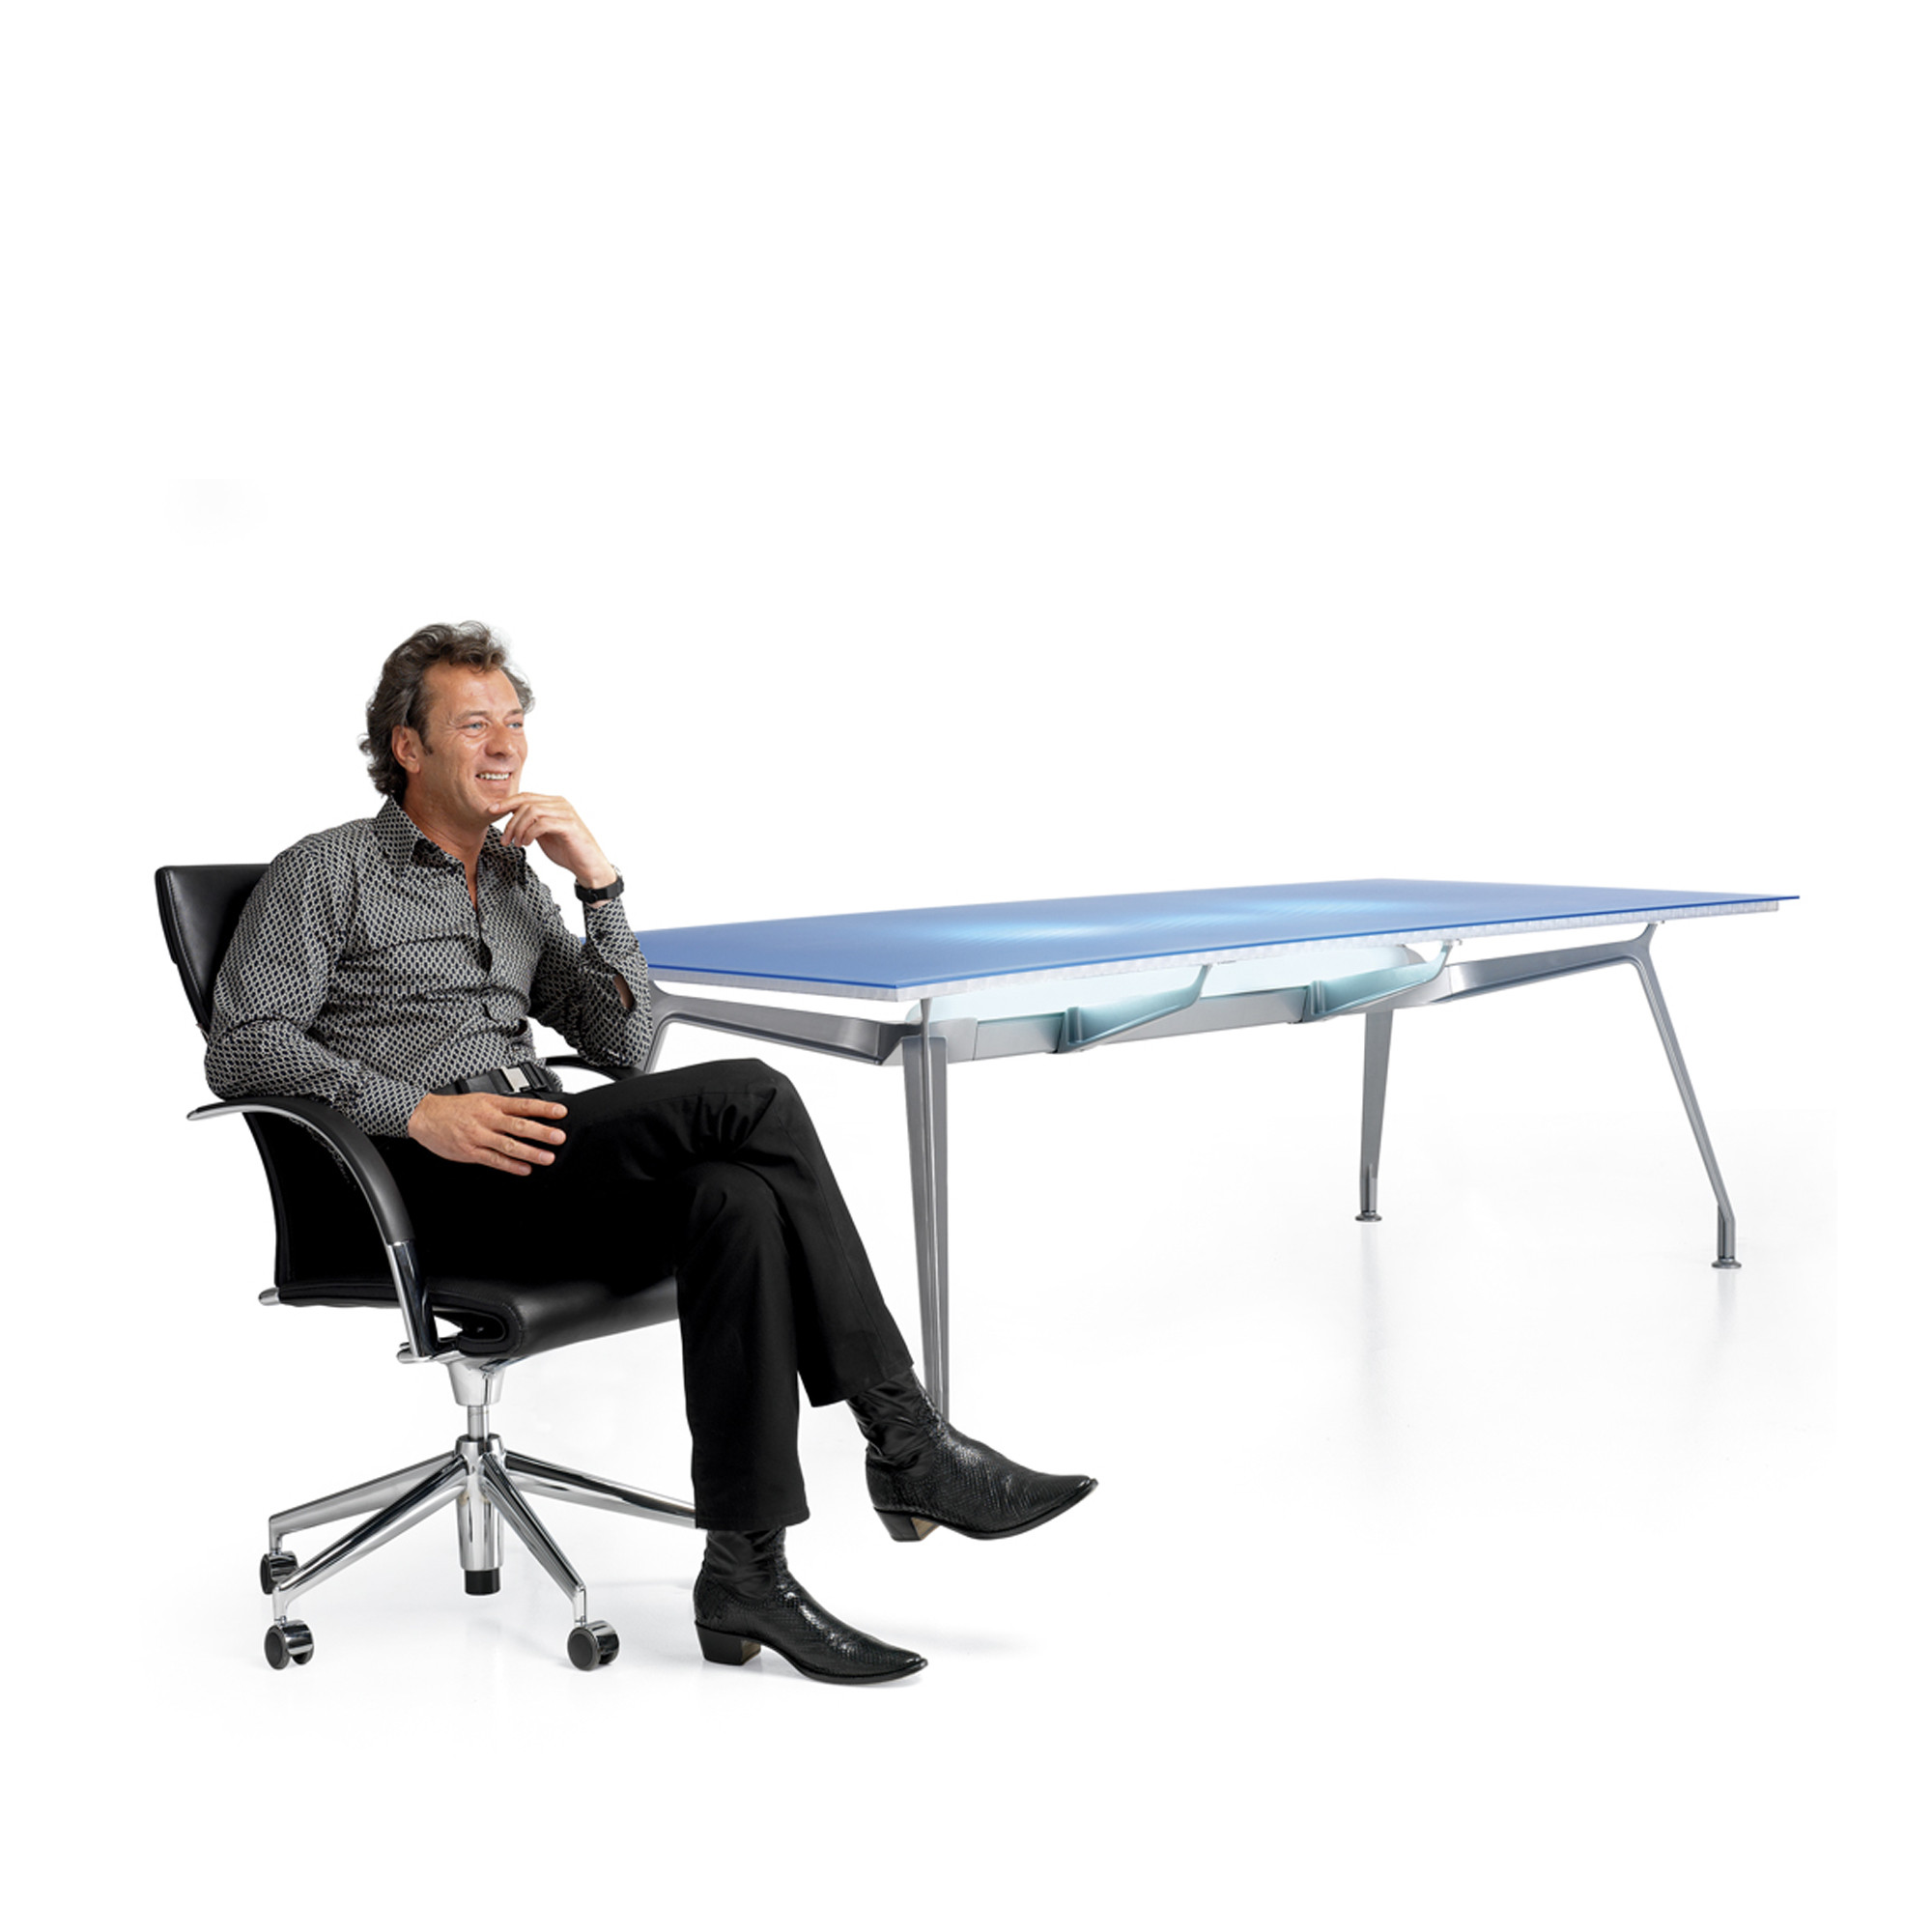 Ahrend 1200 Meeting Tables